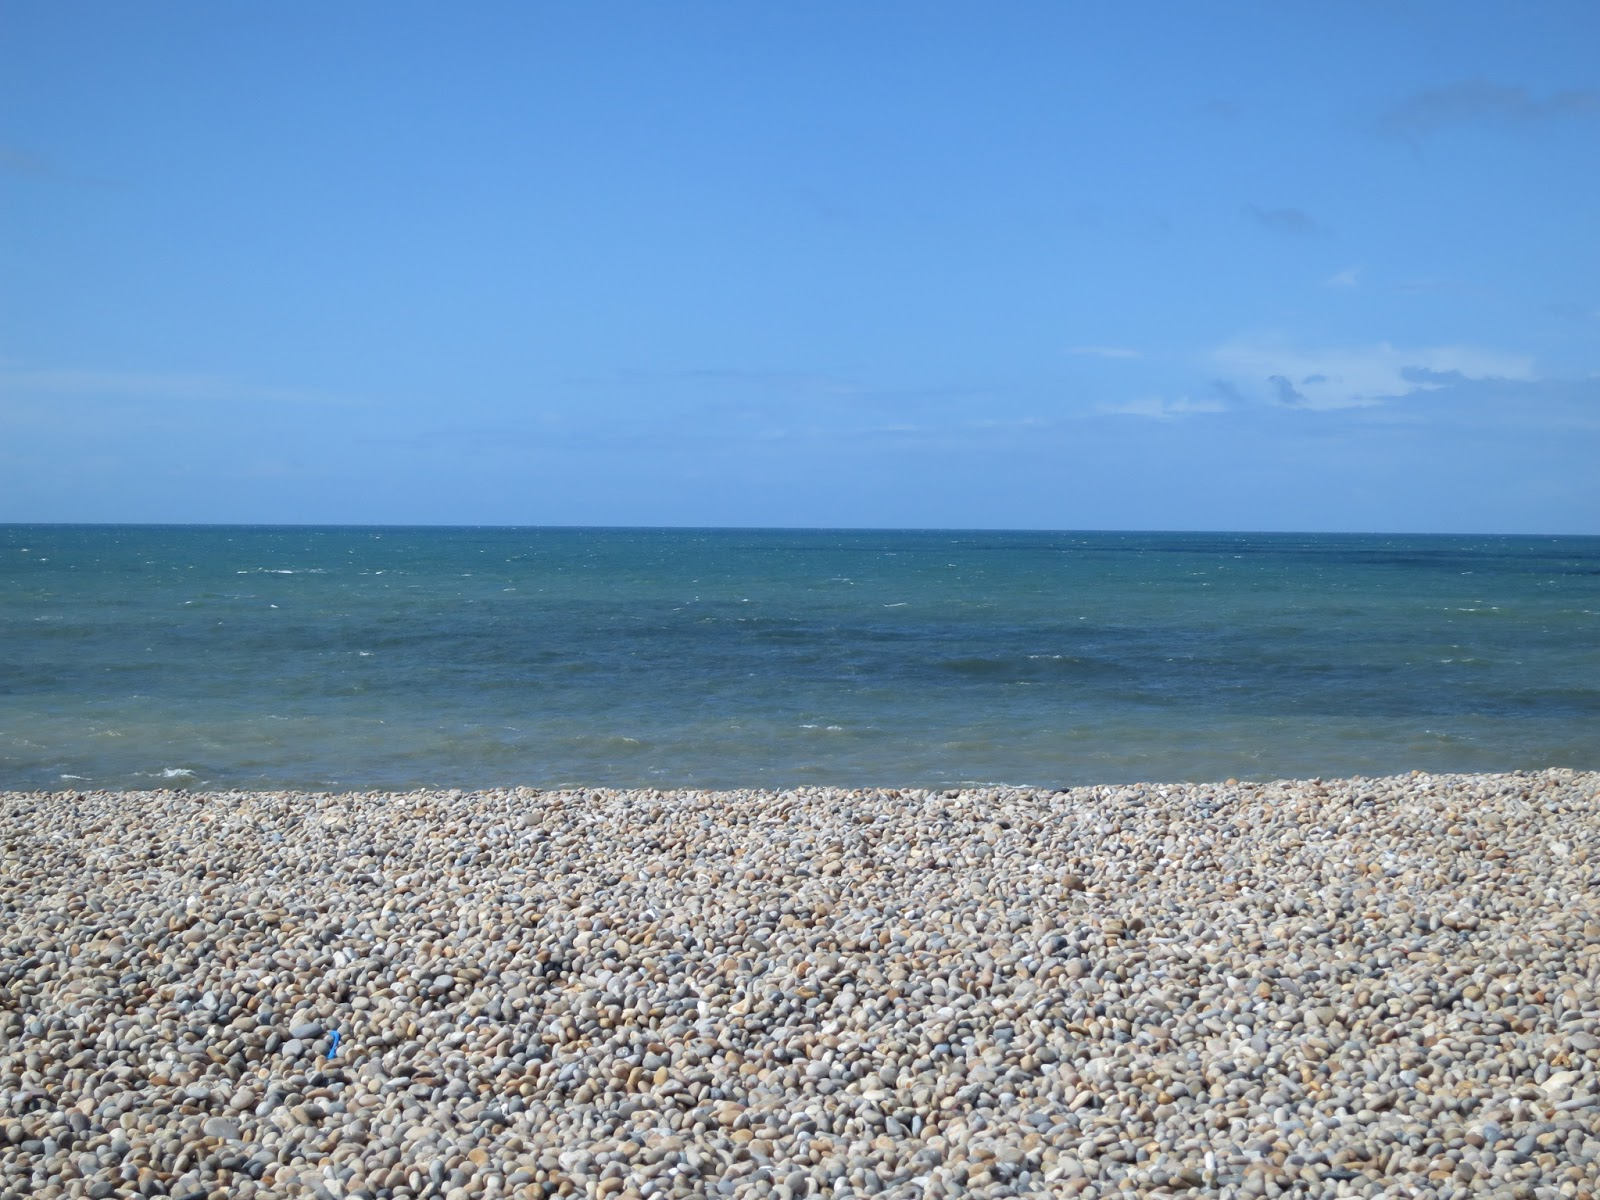 Three bands of colour - grey pebbles, dark blue sea, bright blue sky.